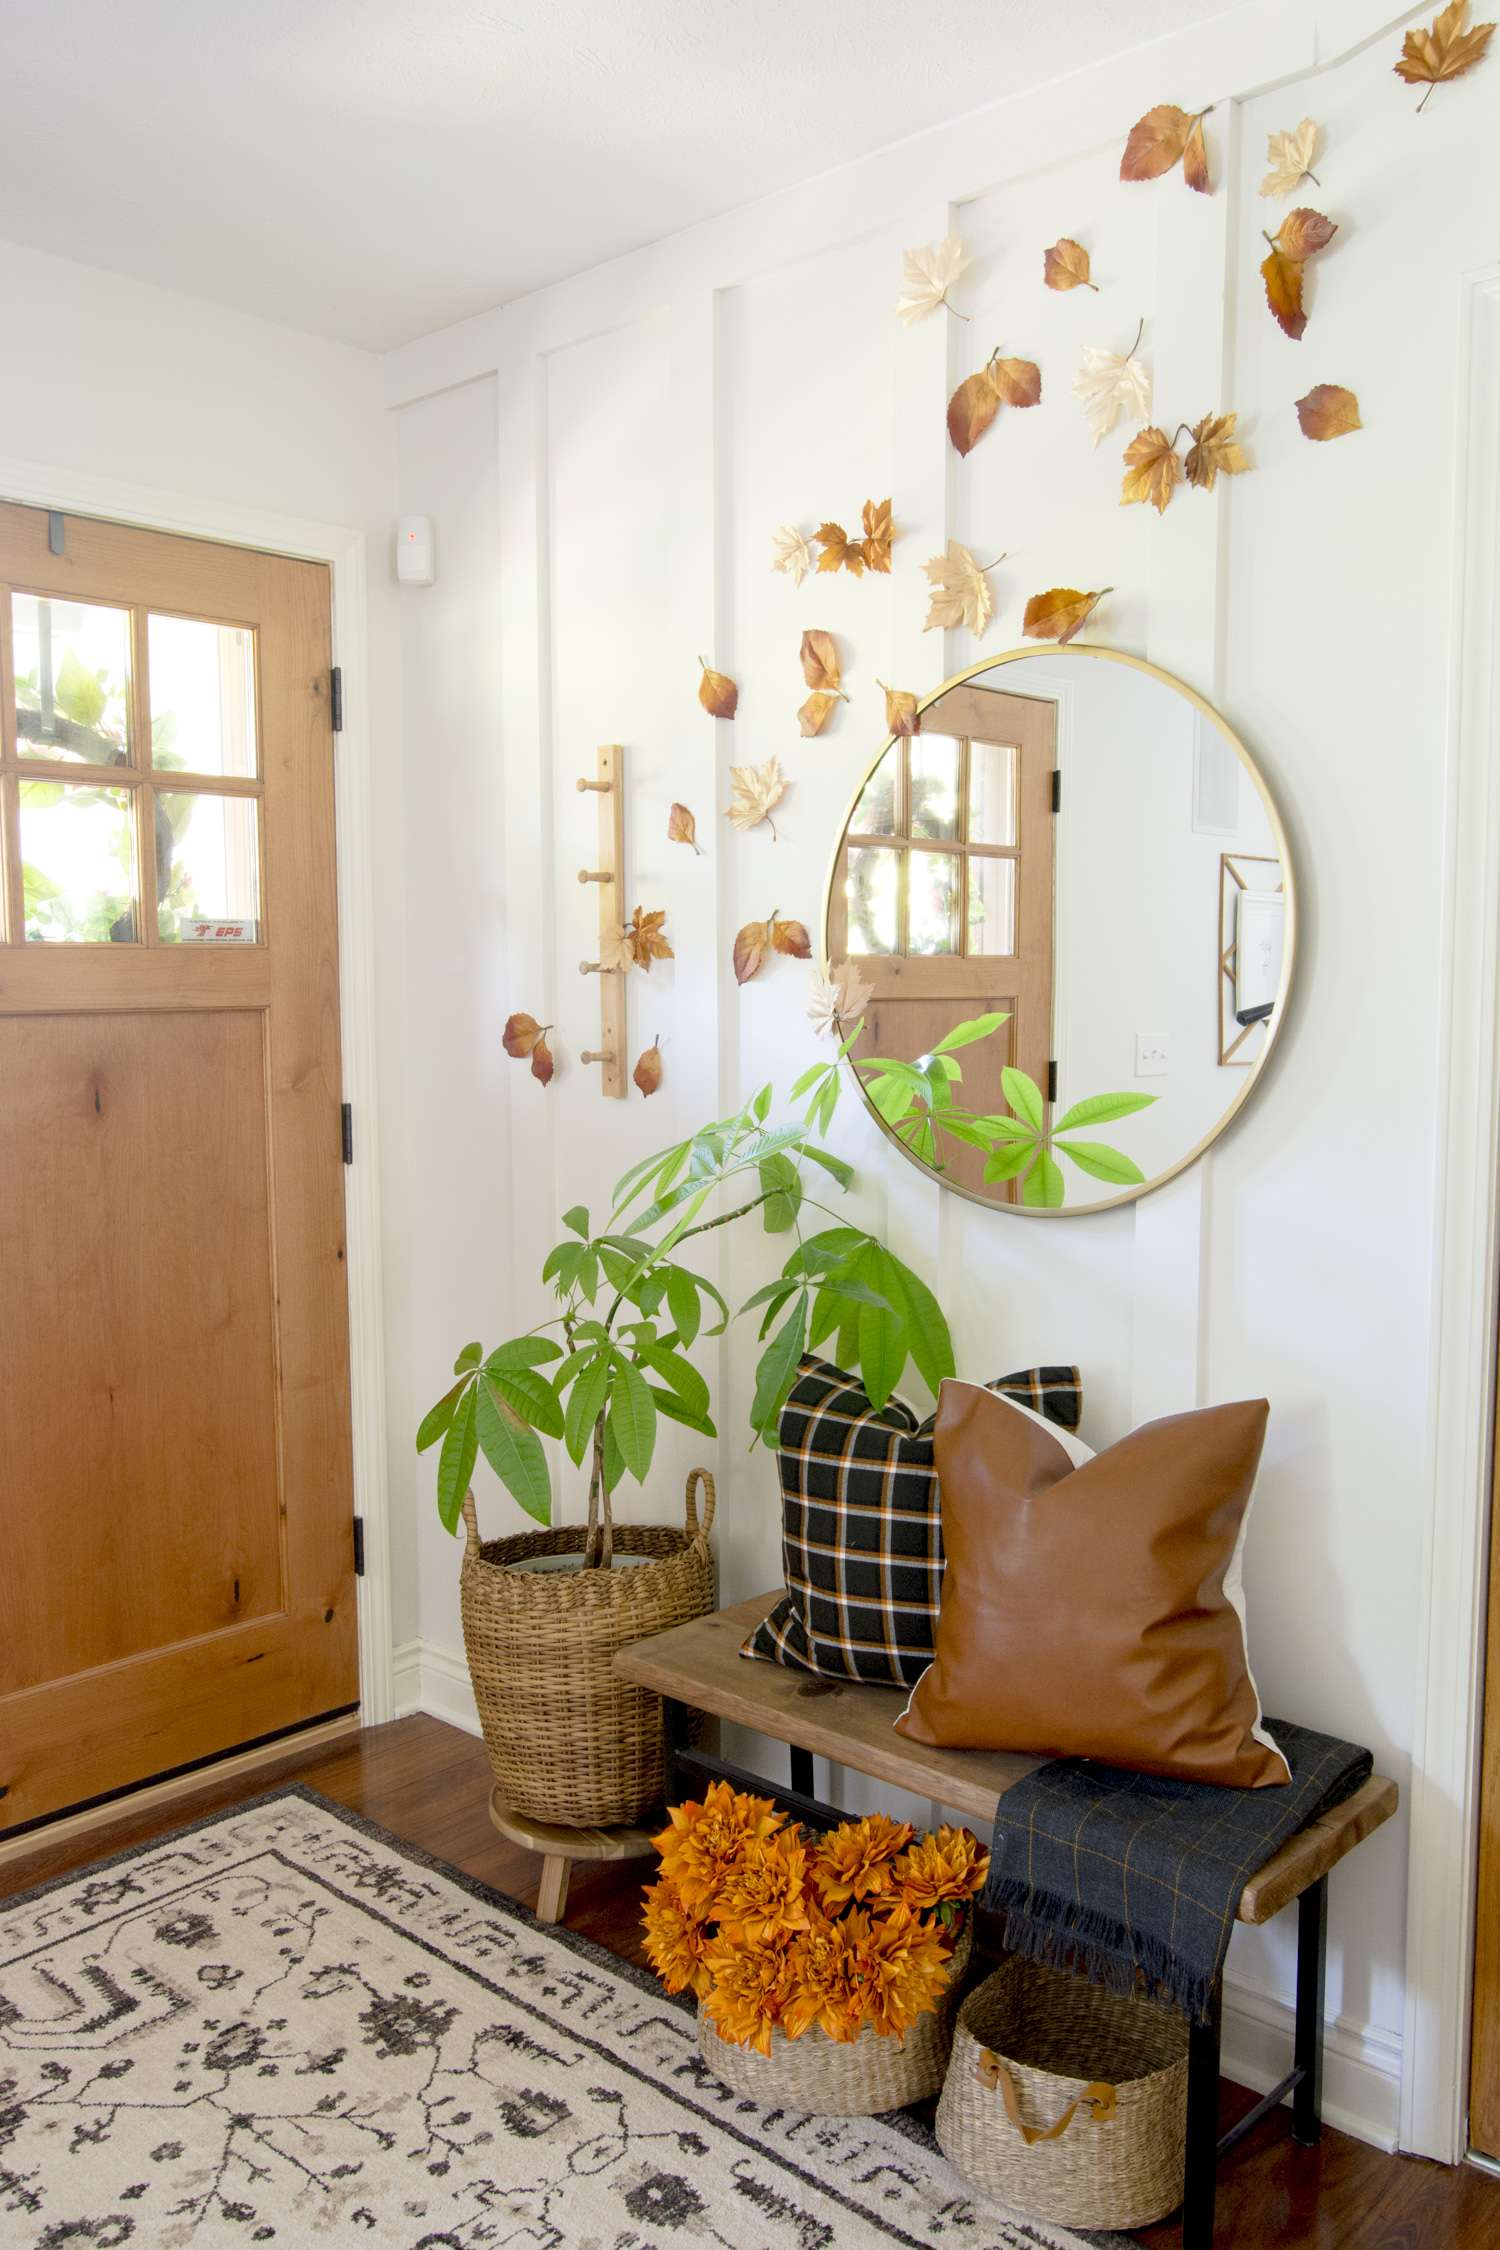 Diy Fall Decorations Simple Leaf Display Grace In My Space